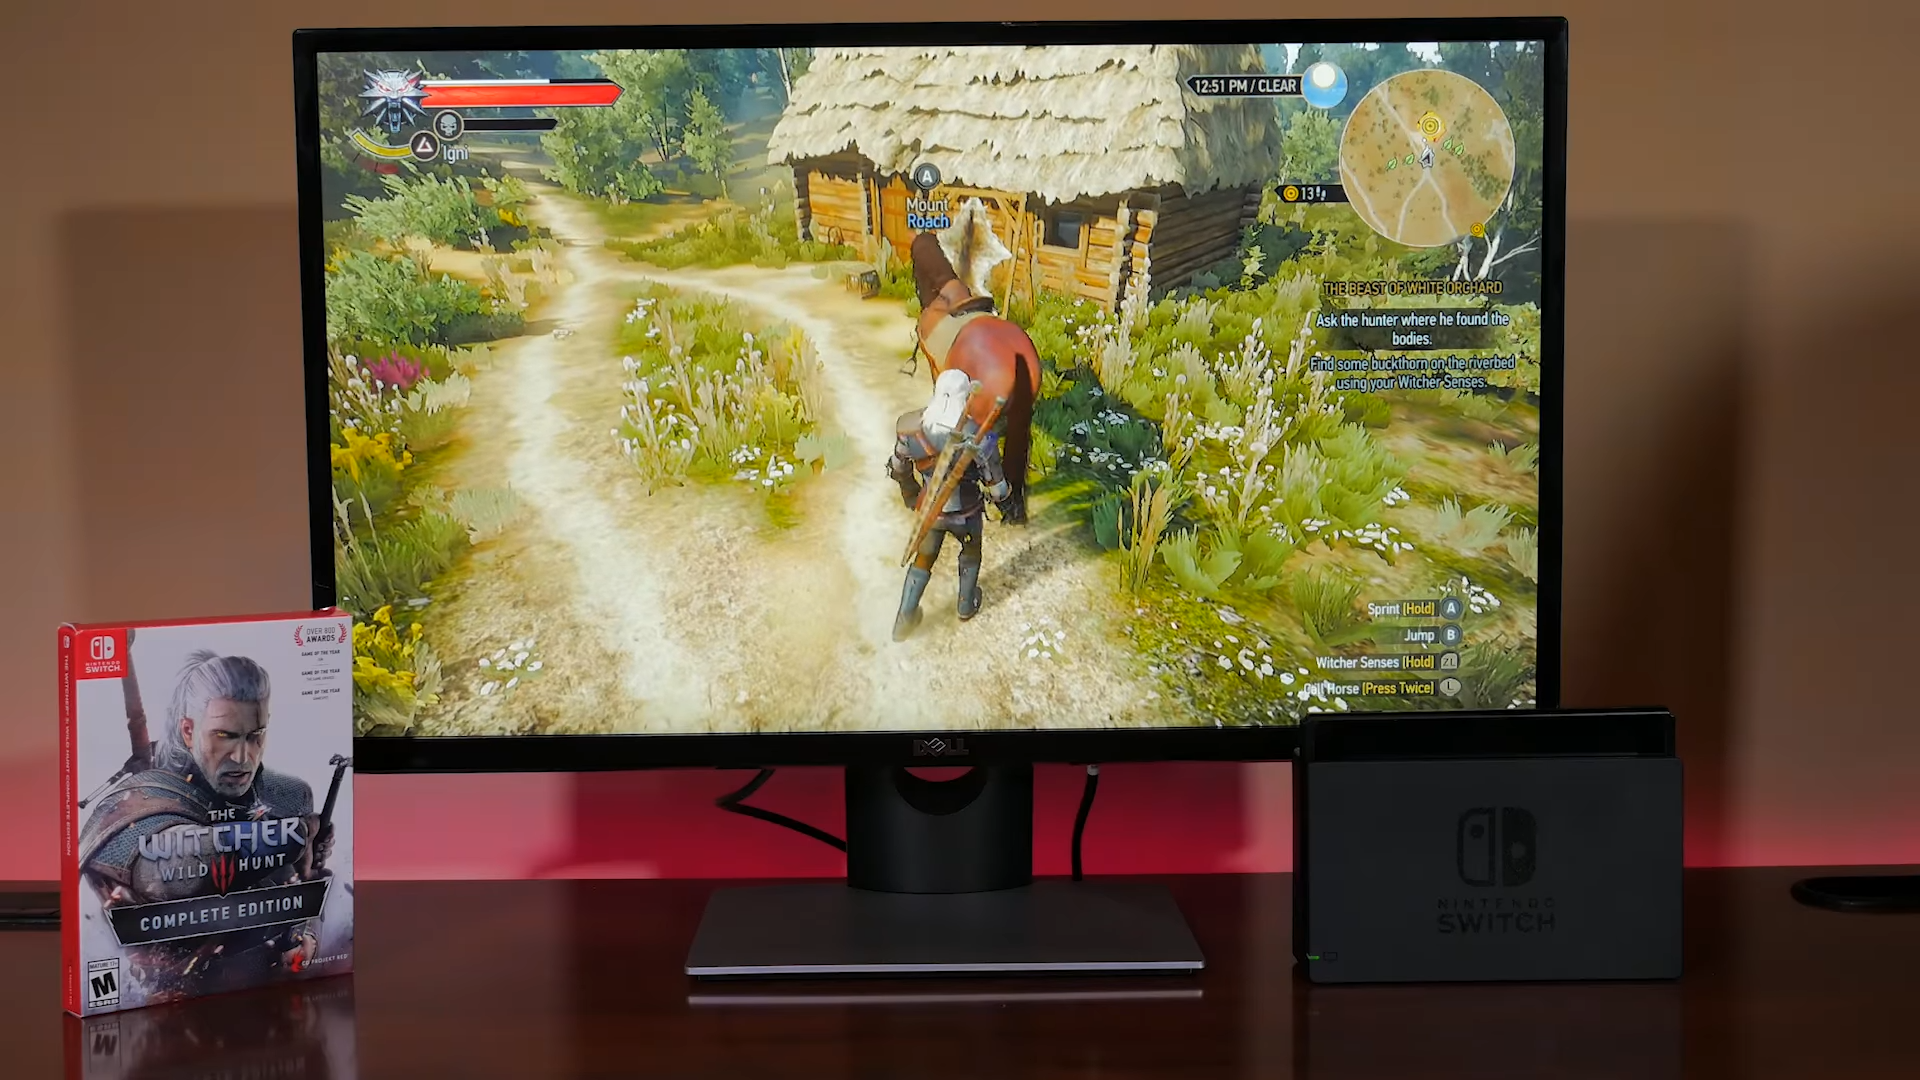 Witcher 3 can run at 60fps on a modded Switch with overclocking and tweaks